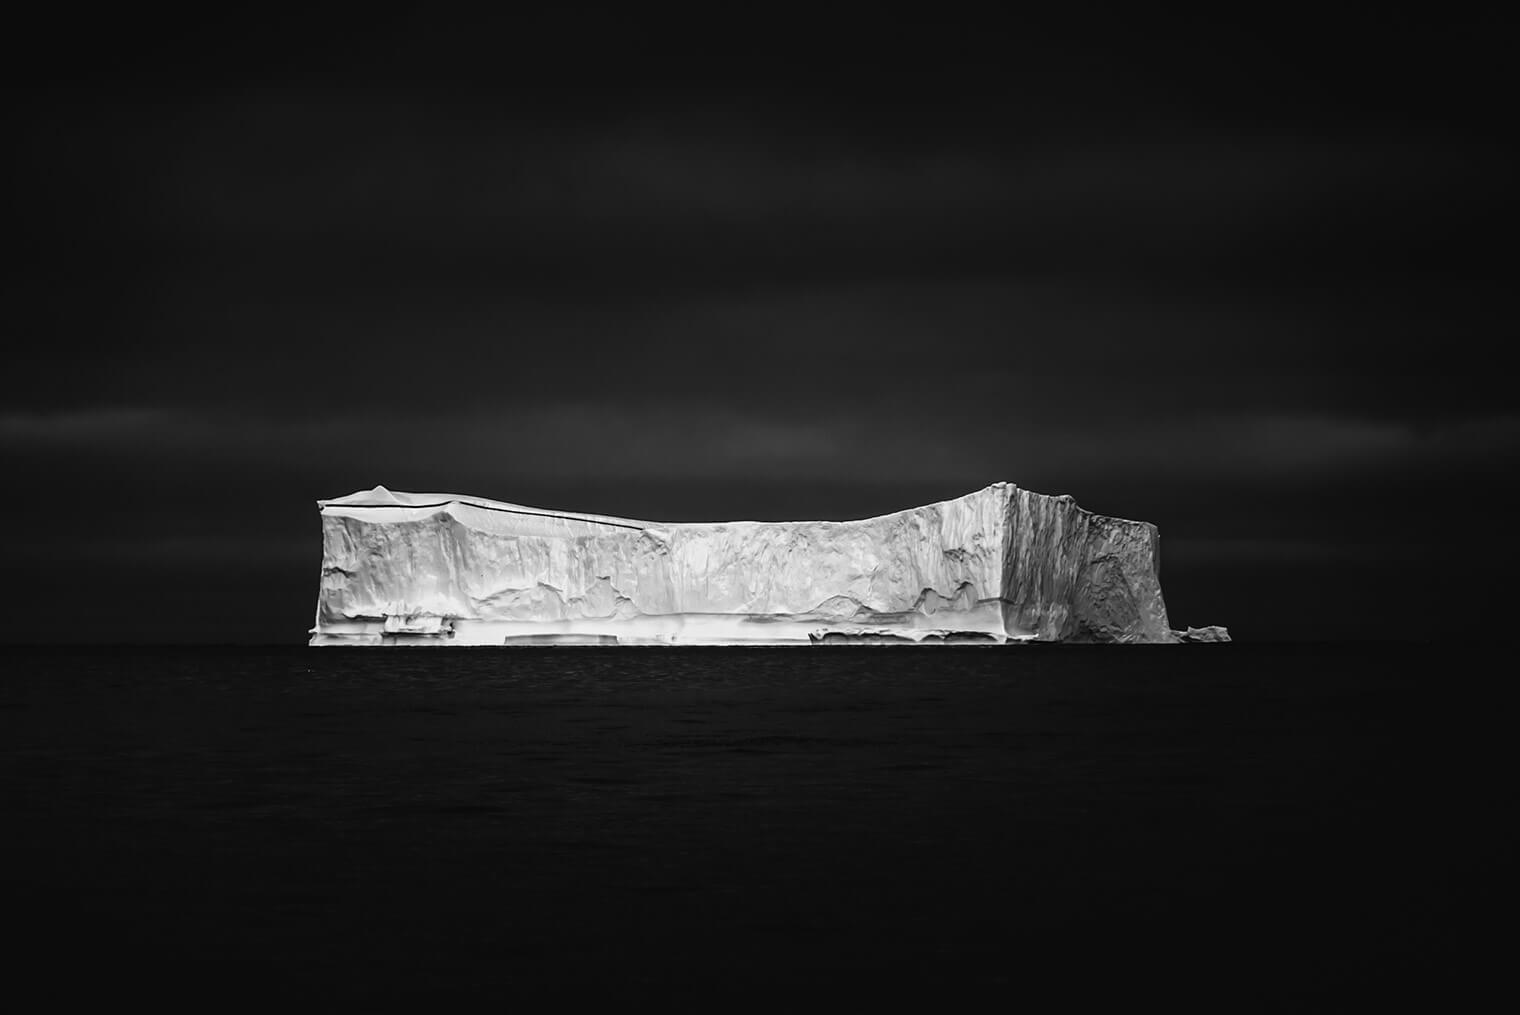 Nordic landscape and fine art photography by Northlandscapes – Jan Erik Waider